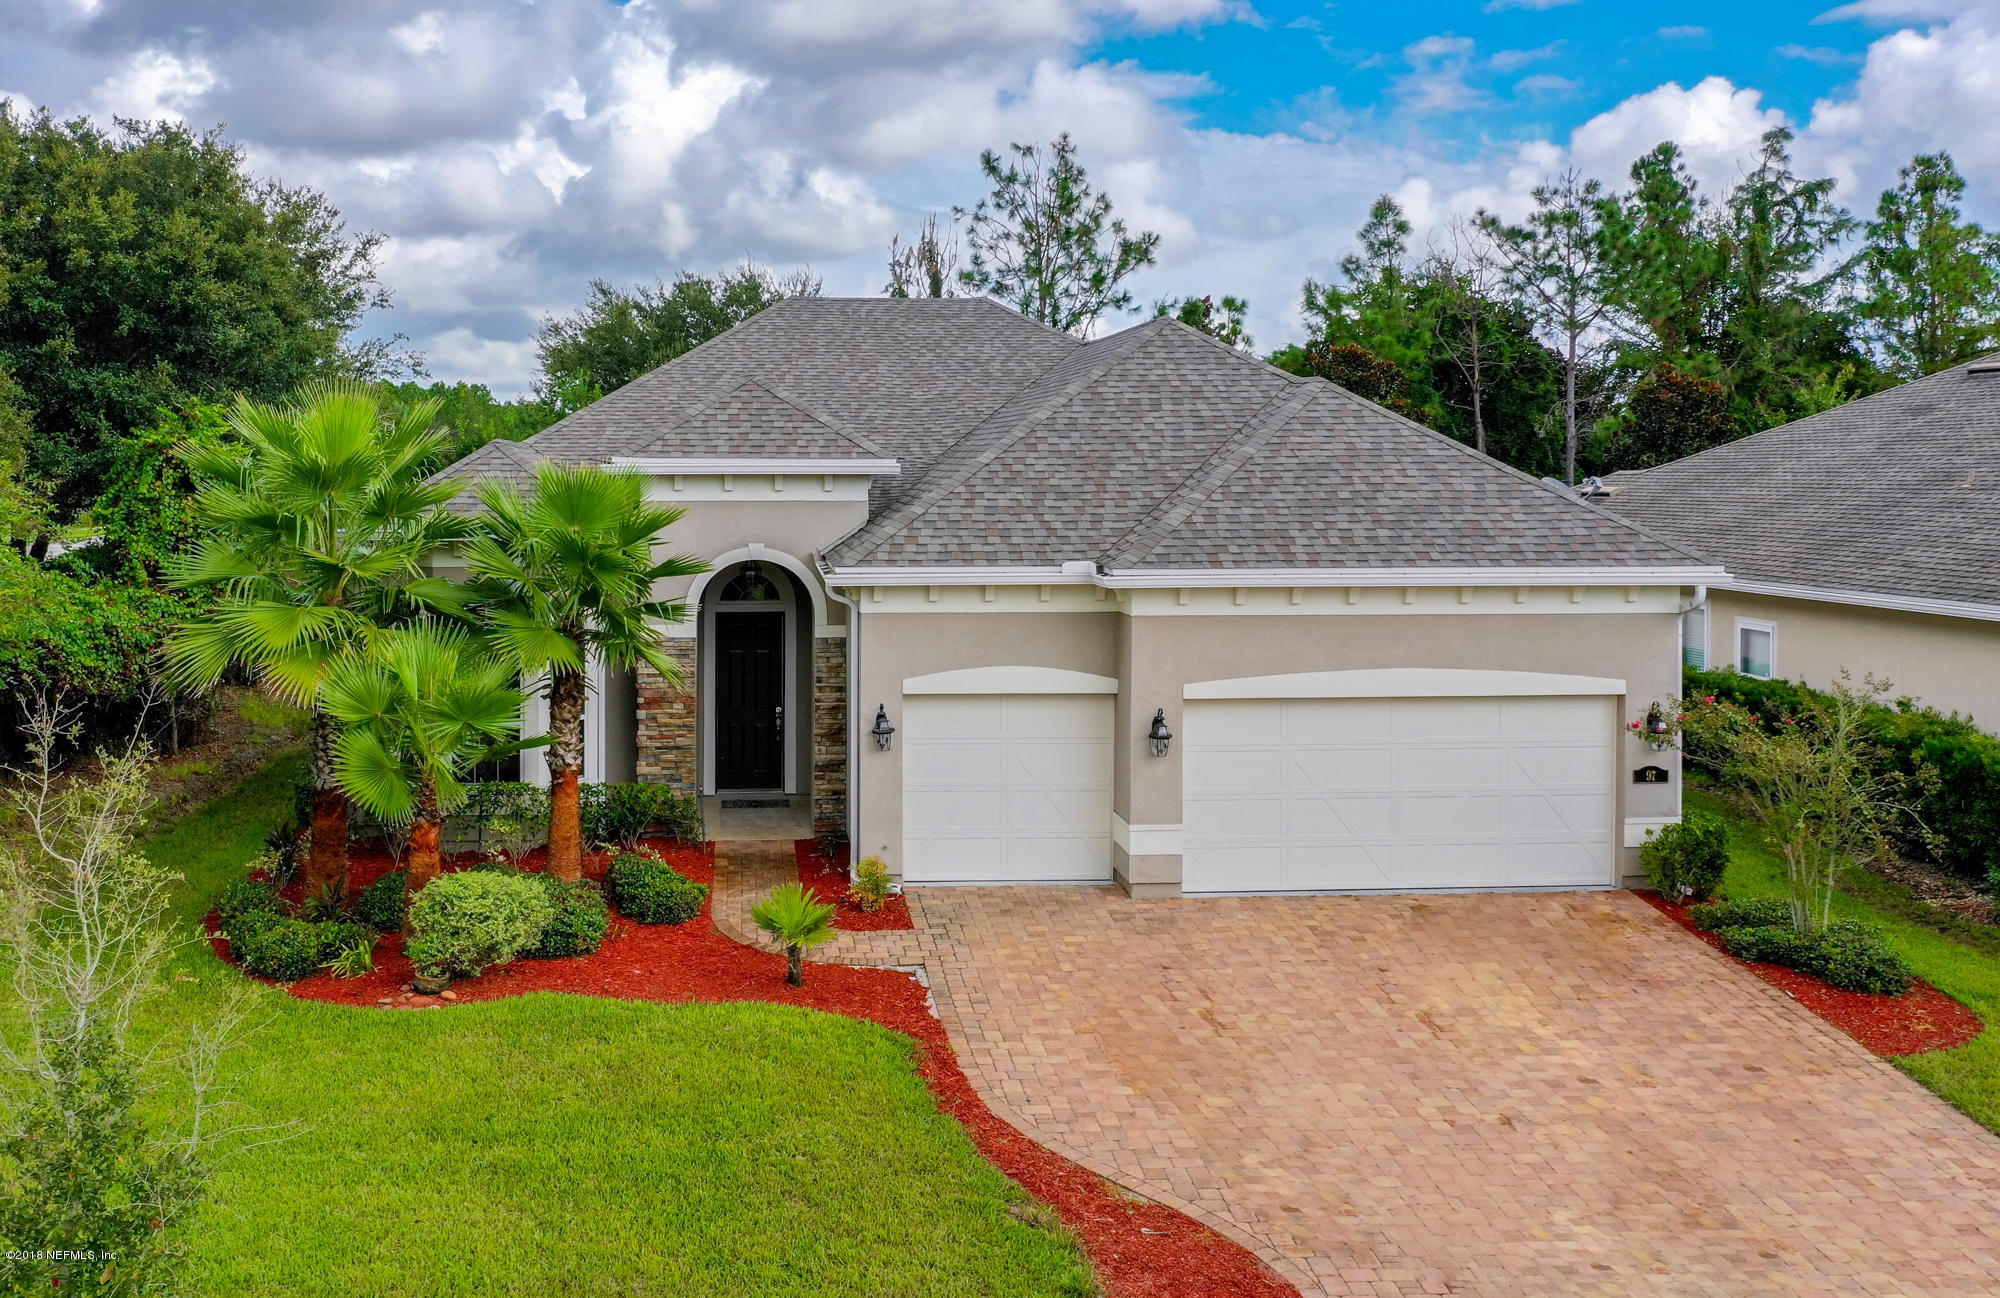 97 WILLOW FALLS, PONTE VEDRA BEACH, FLORIDA 32081, 4 Bedrooms Bedrooms, ,3 BathroomsBathrooms,Residential - single family,For sale,WILLOW FALLS,957477